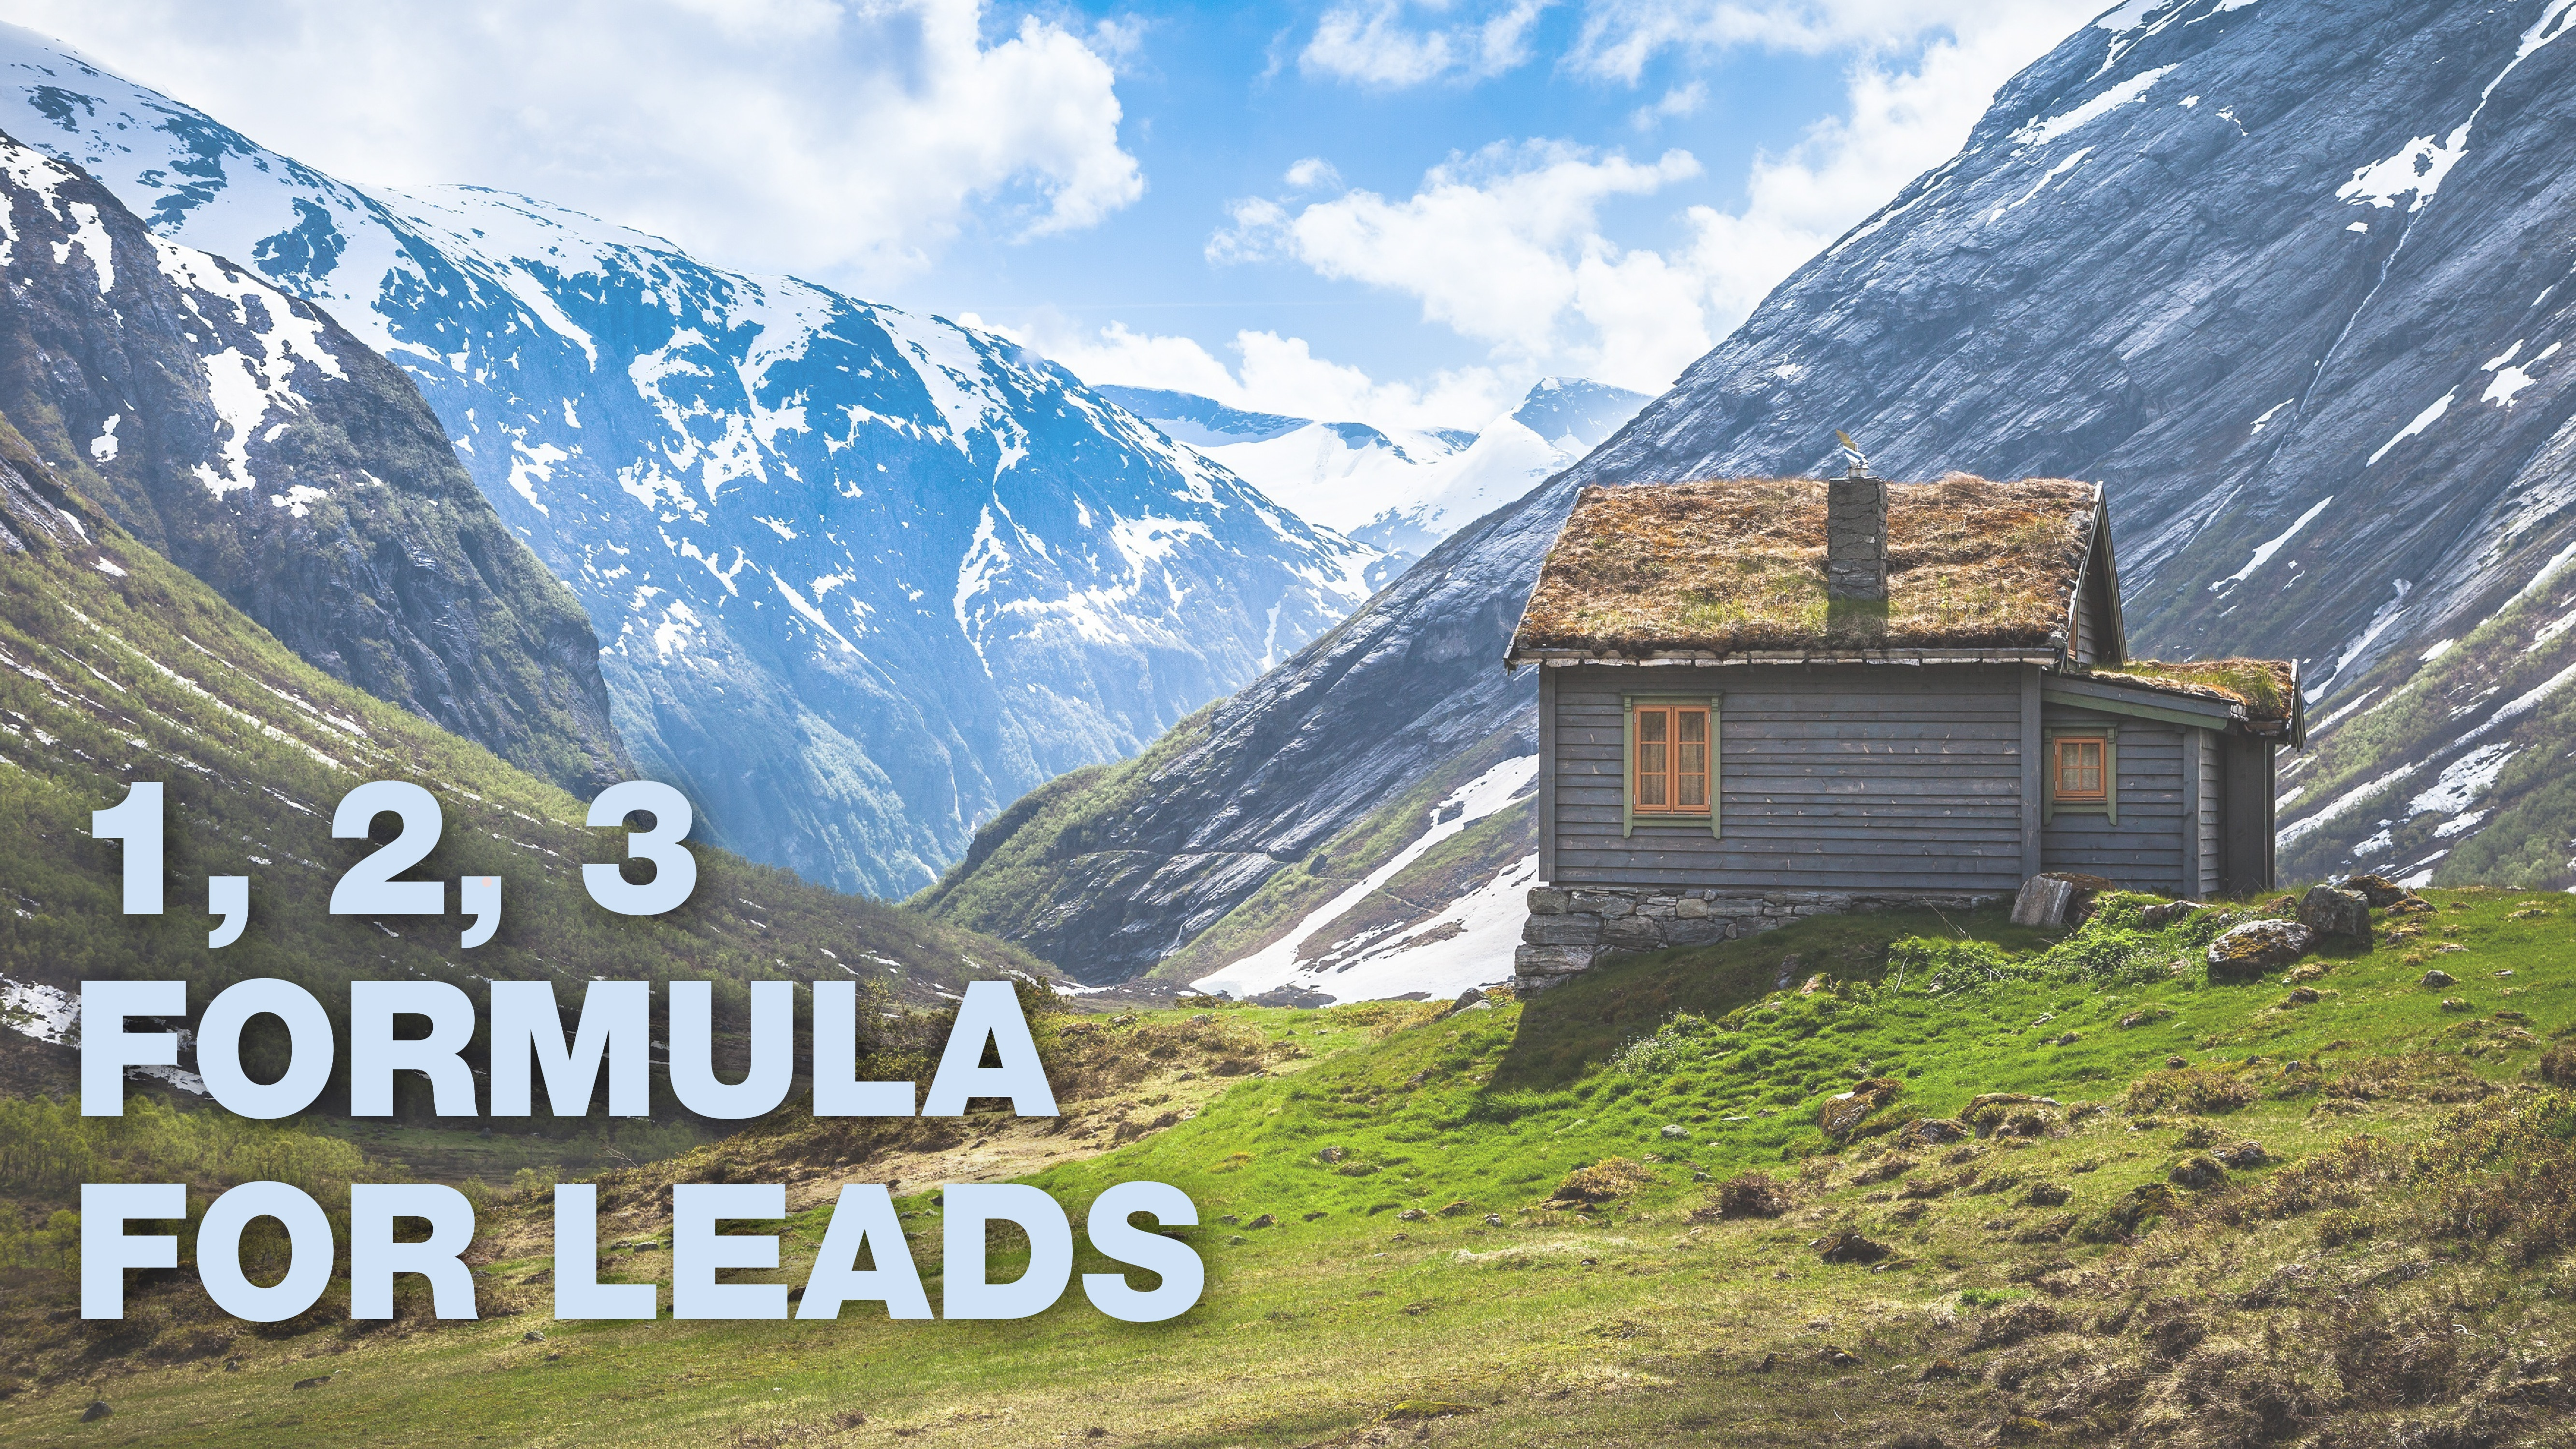 1, 2, 3 formula for leads